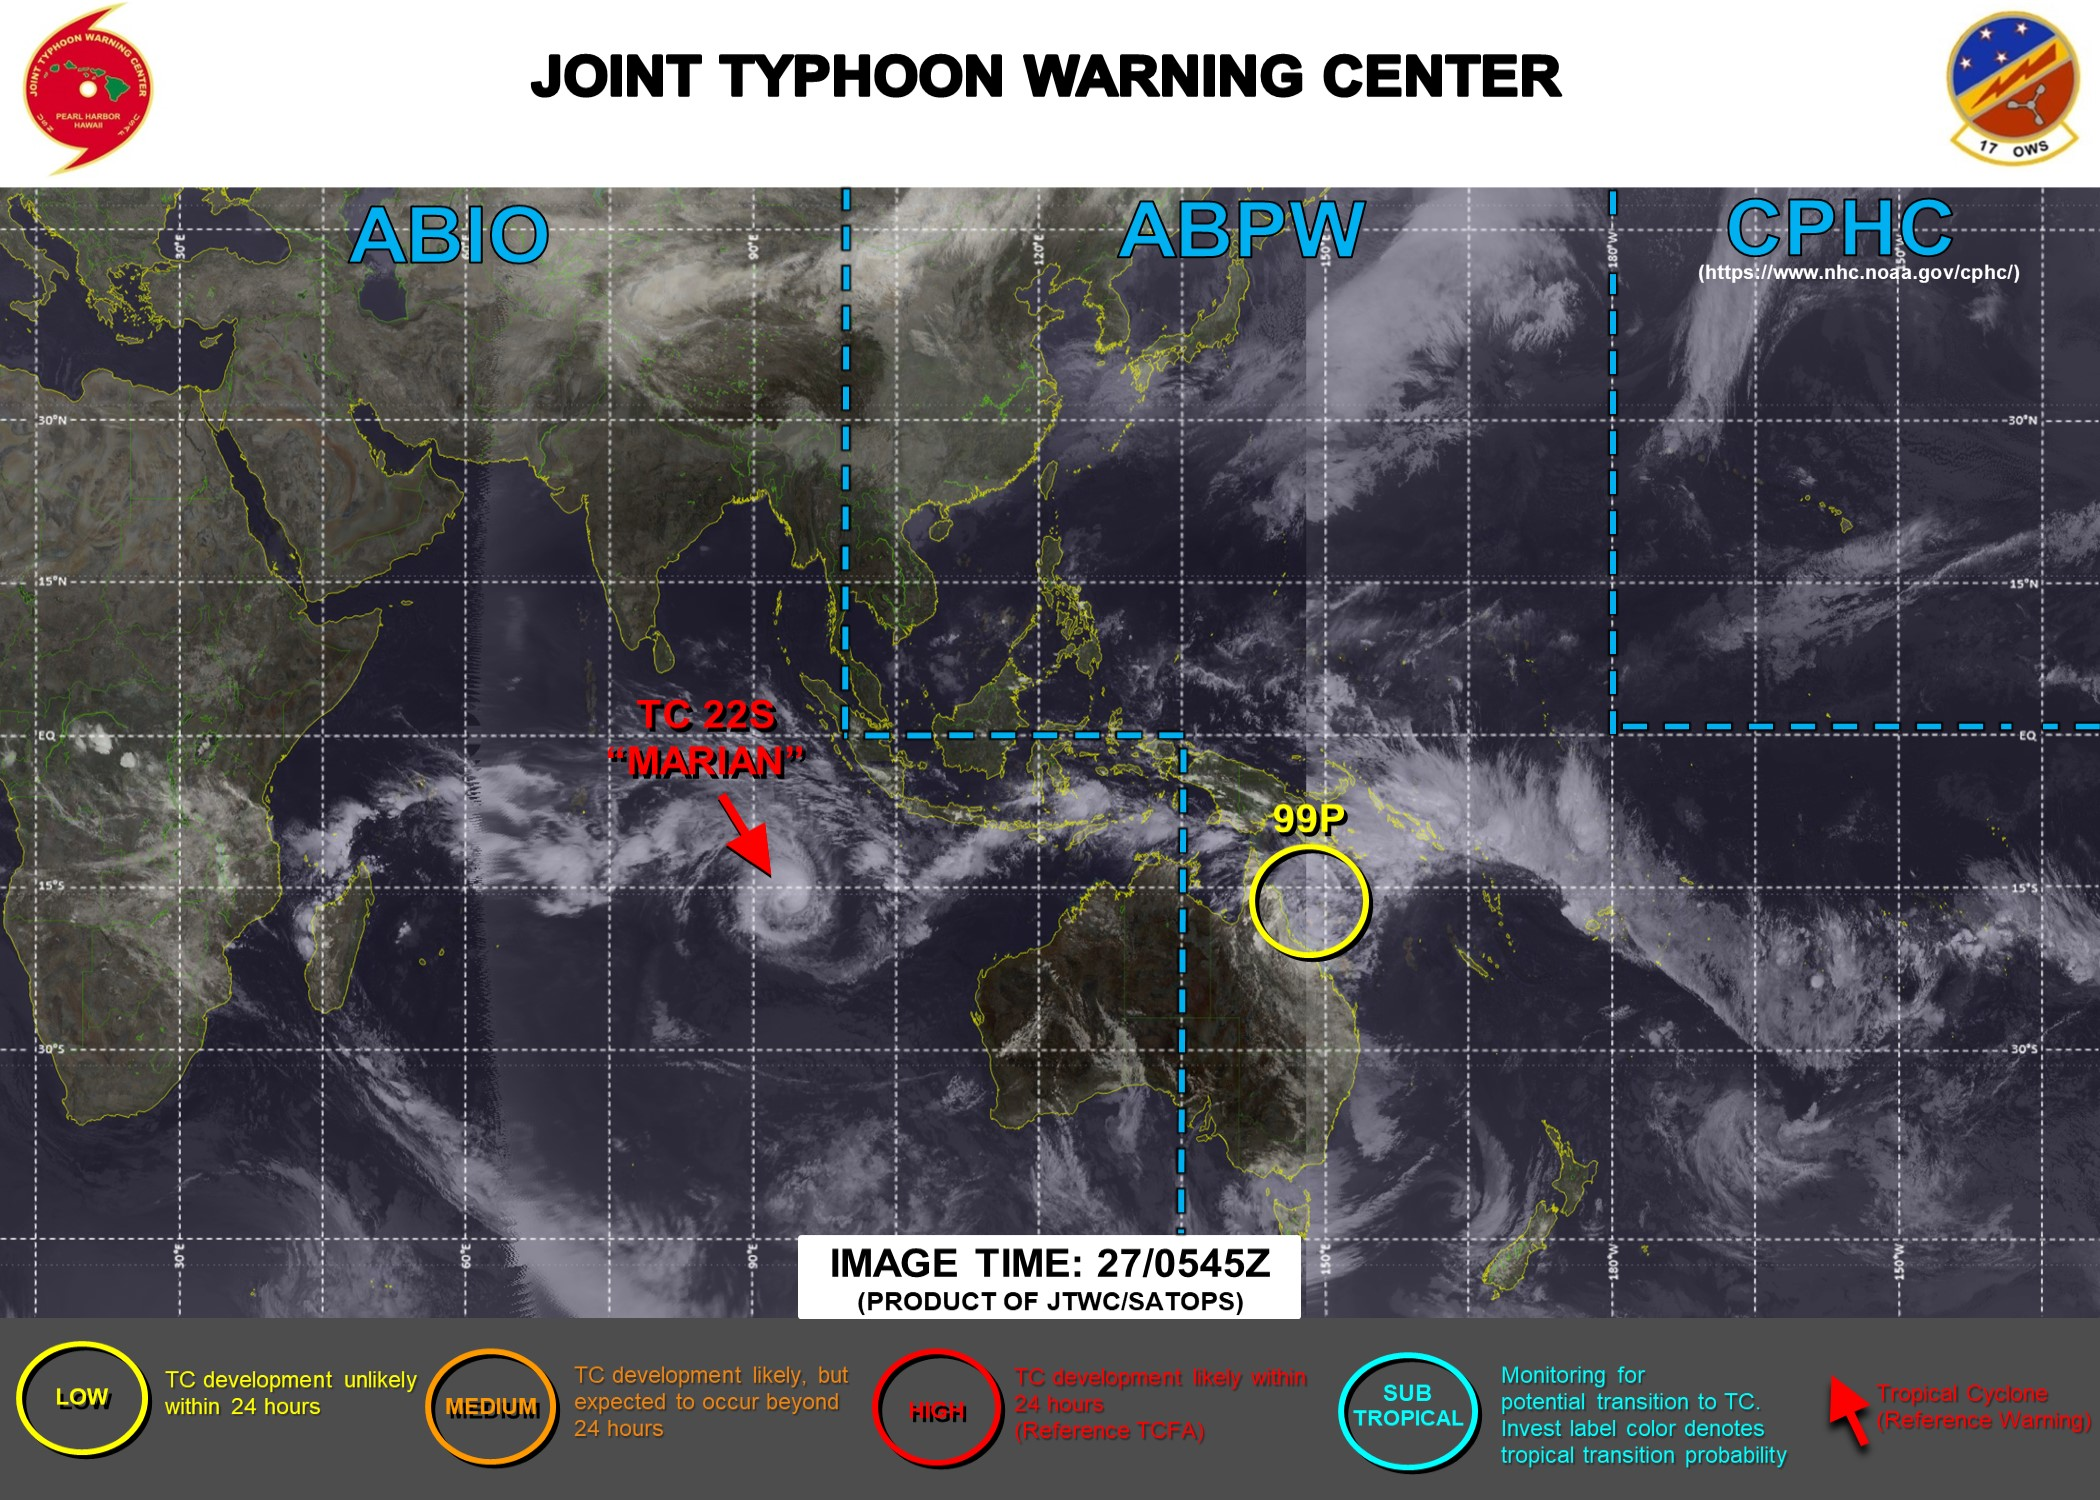 27/12UTC. JTWC IS ISSUING 12HOURLY WARNINGS AND 3 HOURLY SATELLITE BULLETINS ON TC 22S(MARIAN). INVEST 99P REMAINS ON THE MAP AND REMAINS LOW FOR THE NEXT 24HOURS.